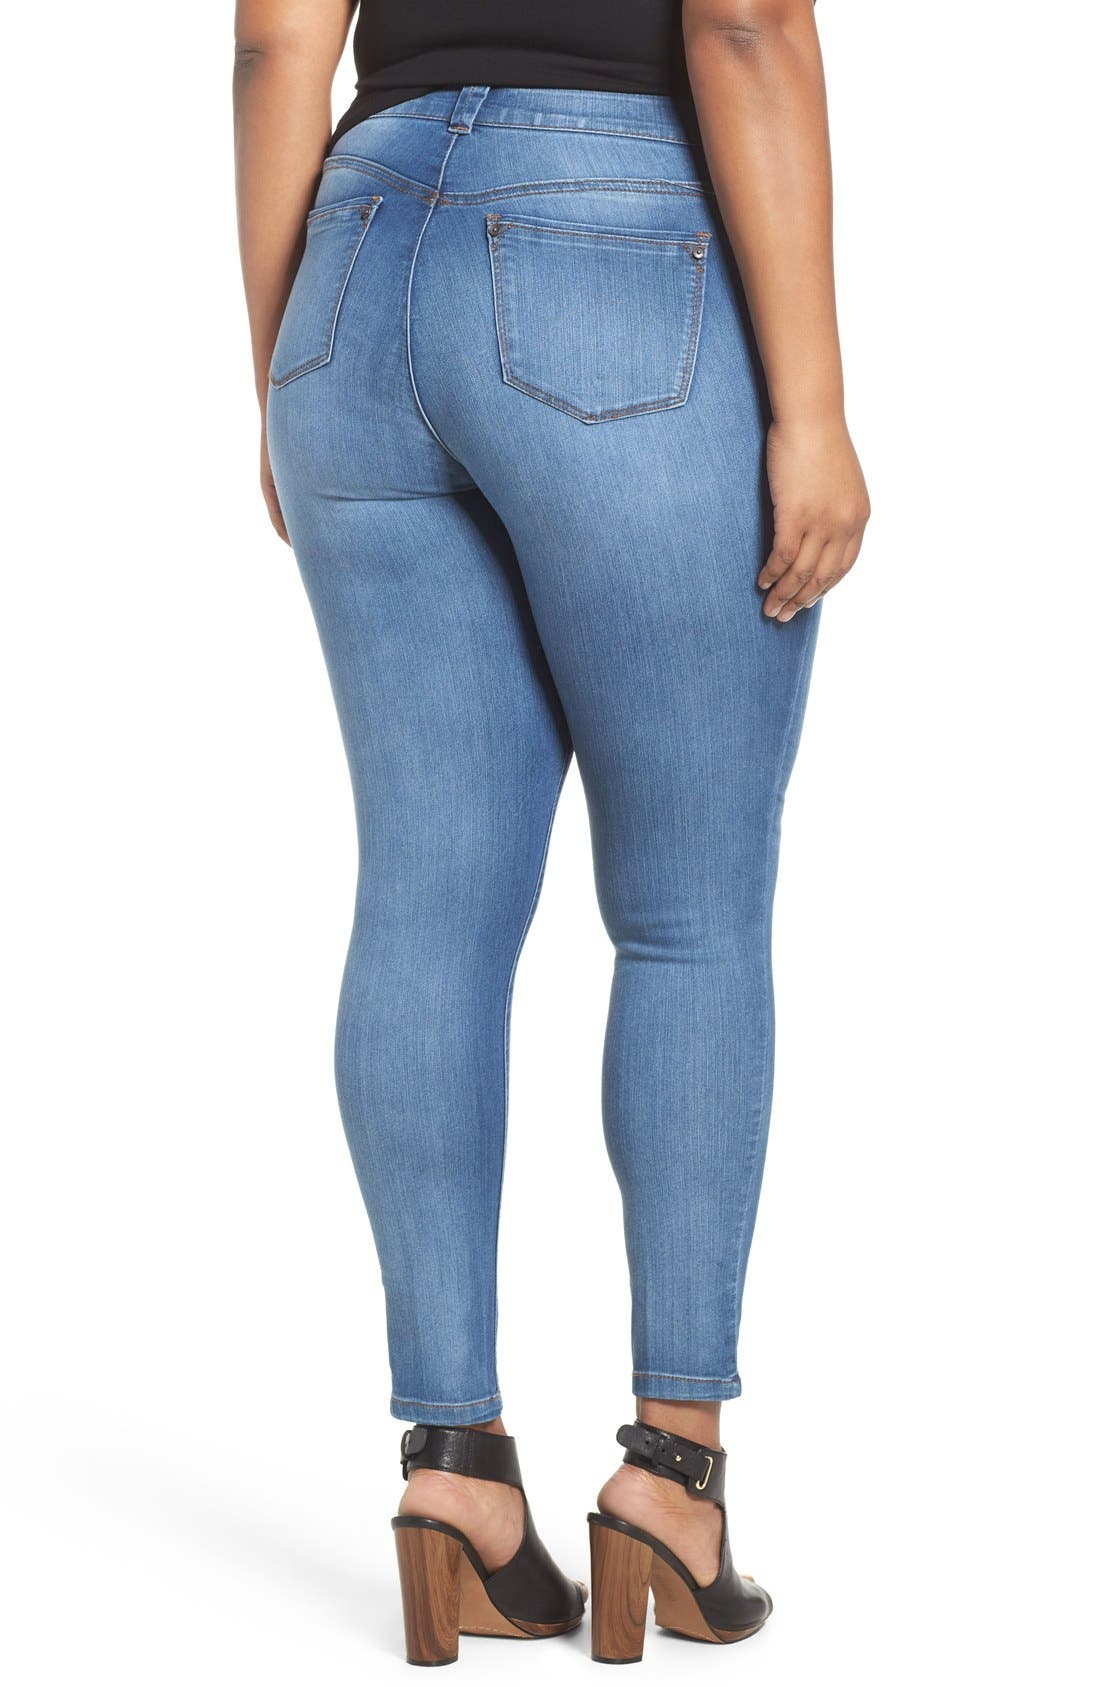 Ab-solution Stretch Skinny Jeans,                             Alternate thumbnail 3, color,                             BLUE